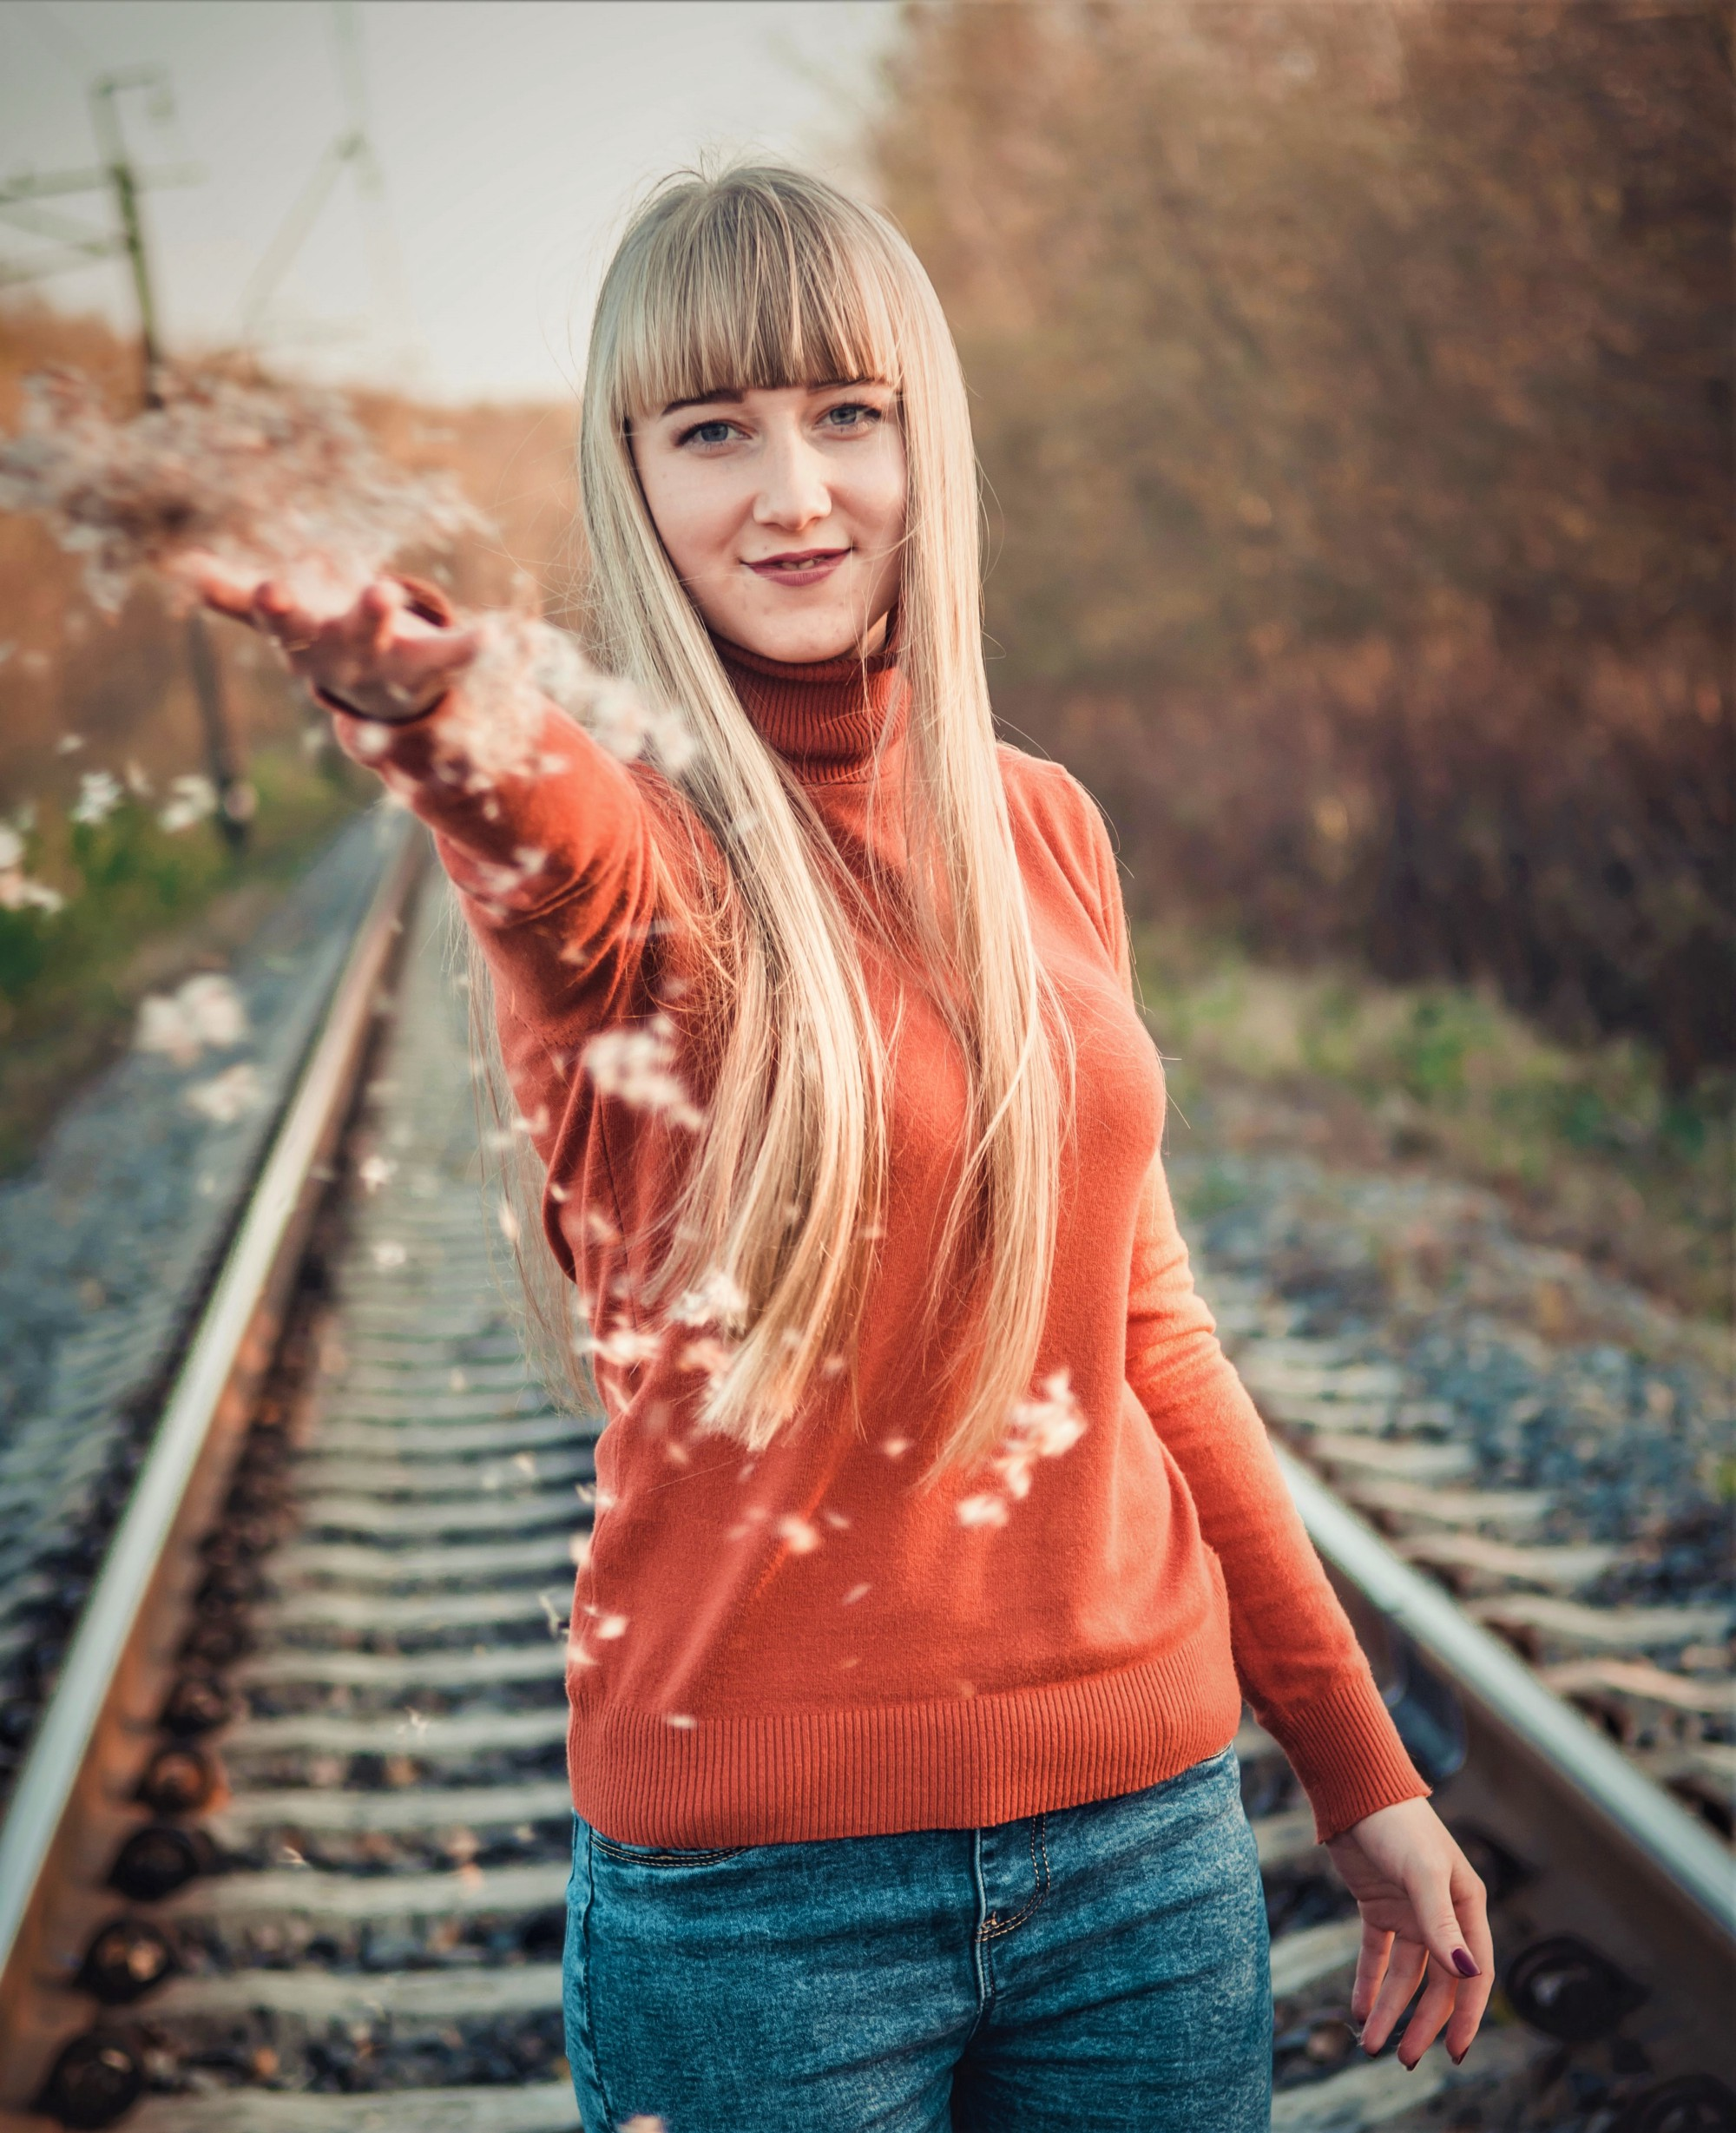 smiling girl with long blonde hair wearing long sleeve orange sweater standing on railroad tracks